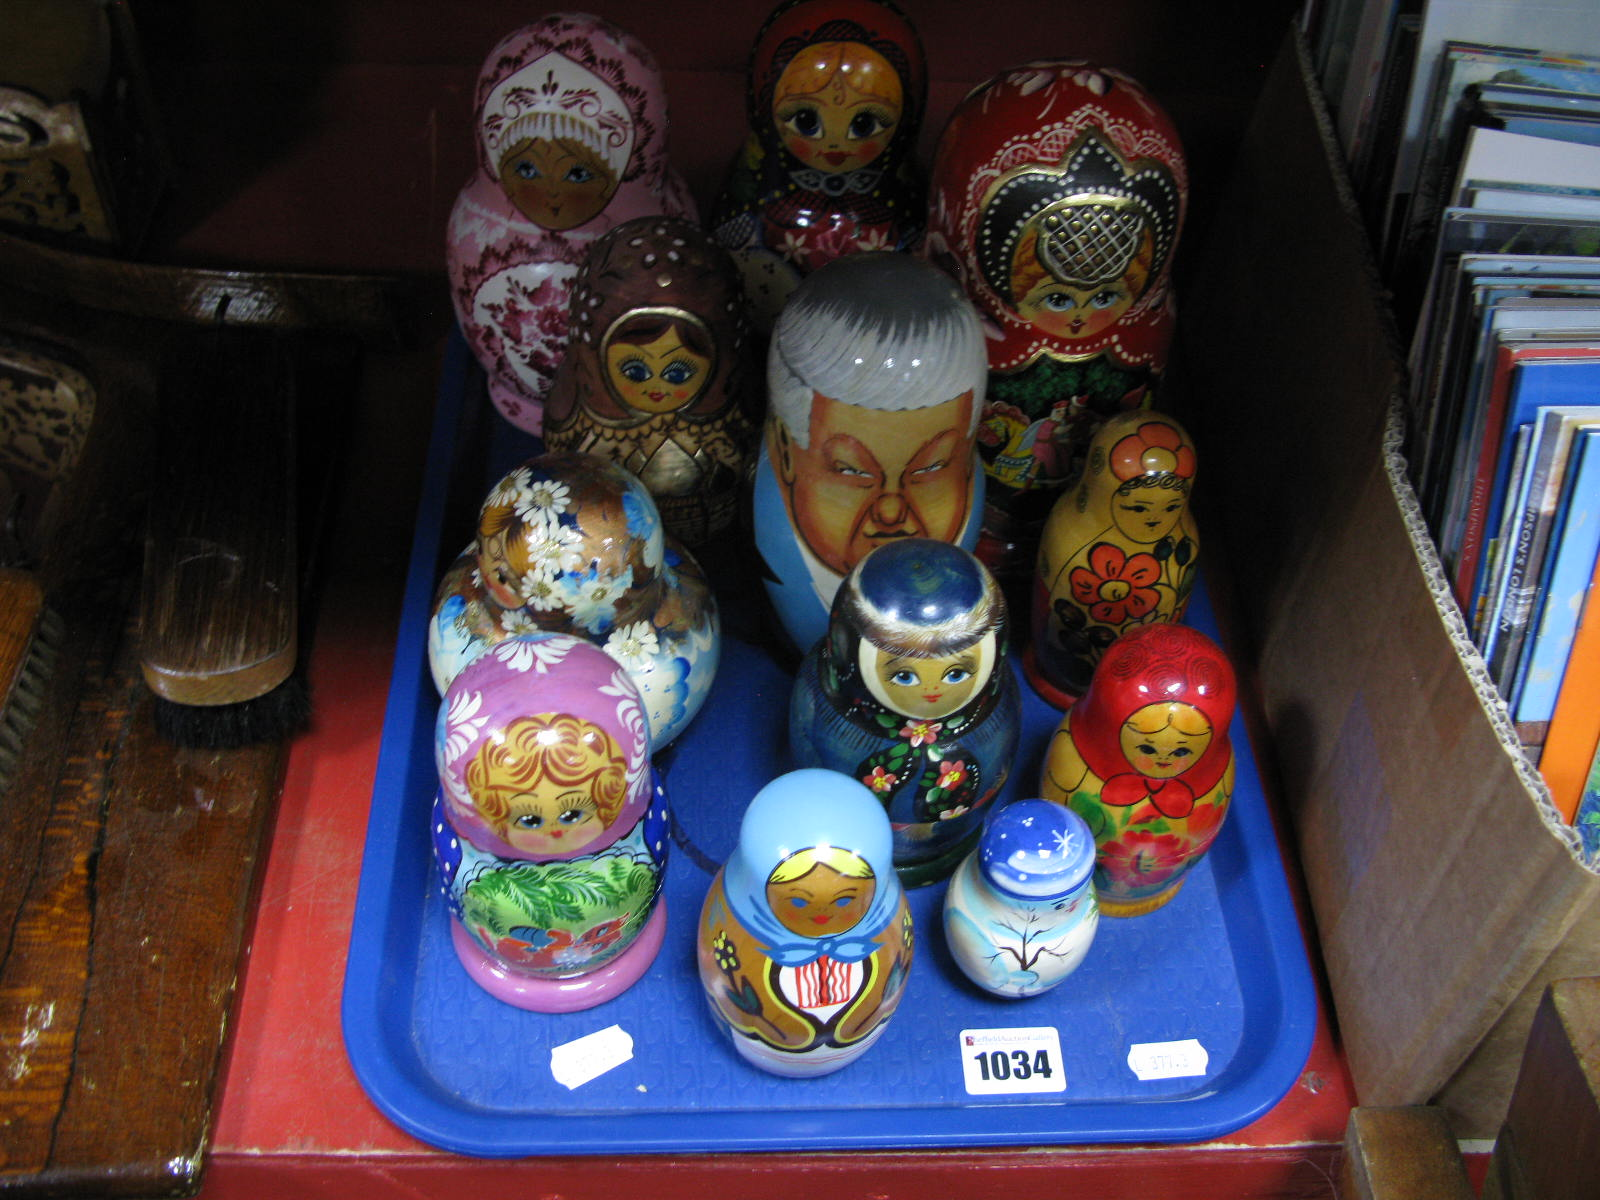 Lot 1034 - A Collection of Twelve Russian Doll Babushka's, varying sizes and designs including Yeltsin:- One